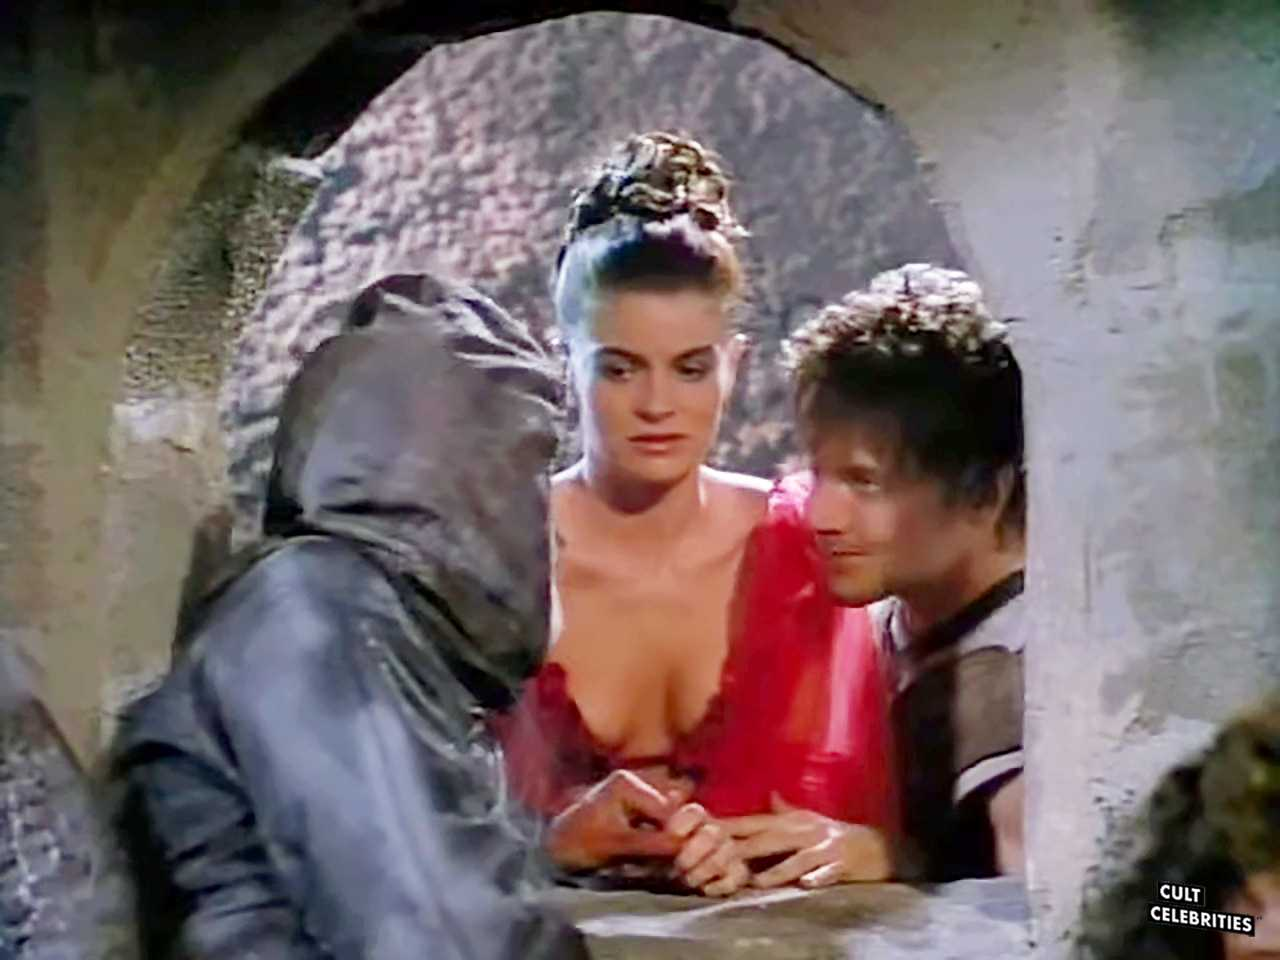 John Allen Nelson and Carla Herd in Deathstalker and the Warriors from Hell (1988)